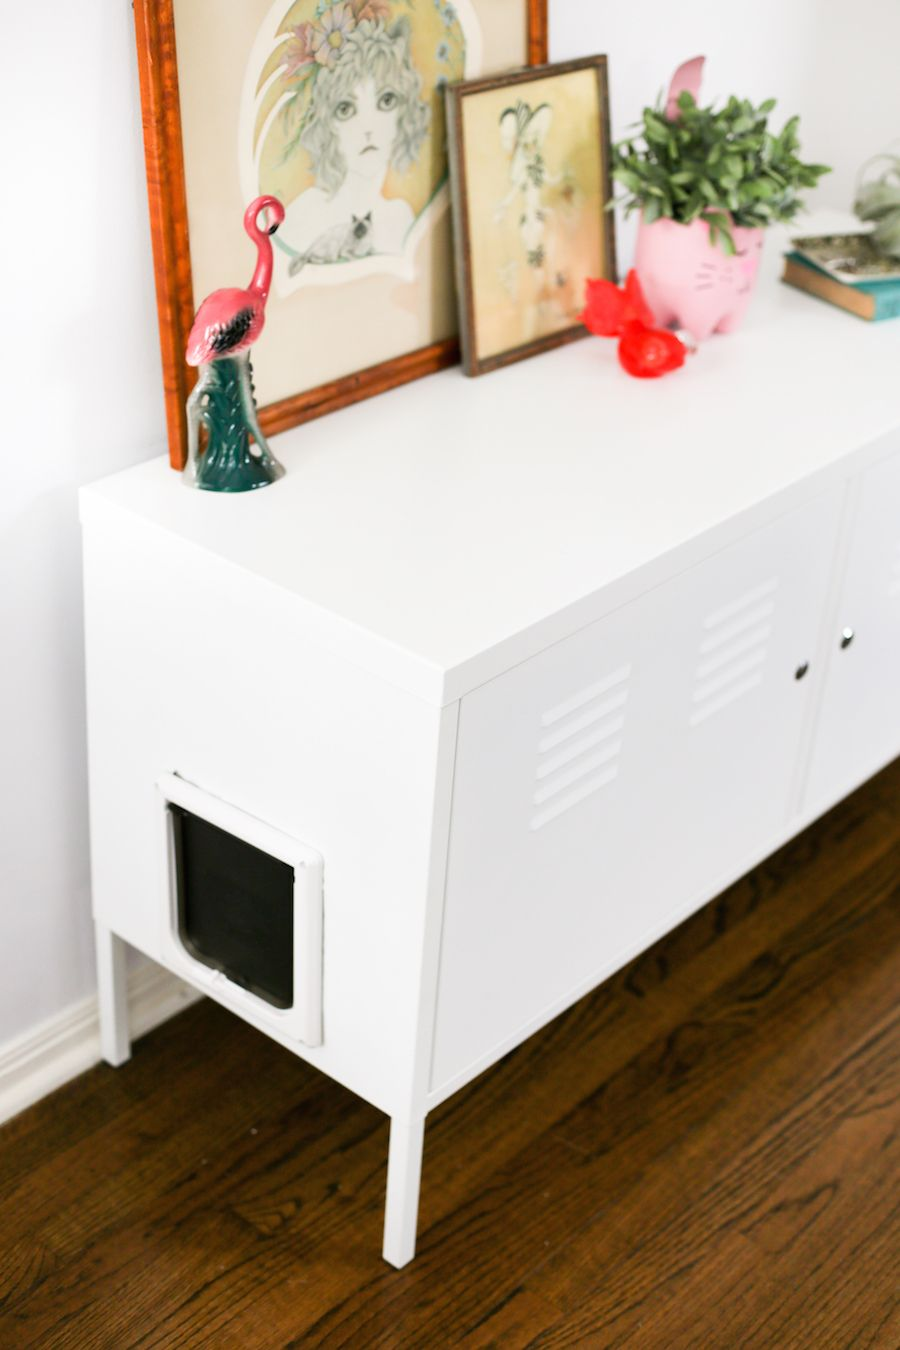 Turn The Ikea Ps Cabinet Into A Giant Kitty Litter Box So You